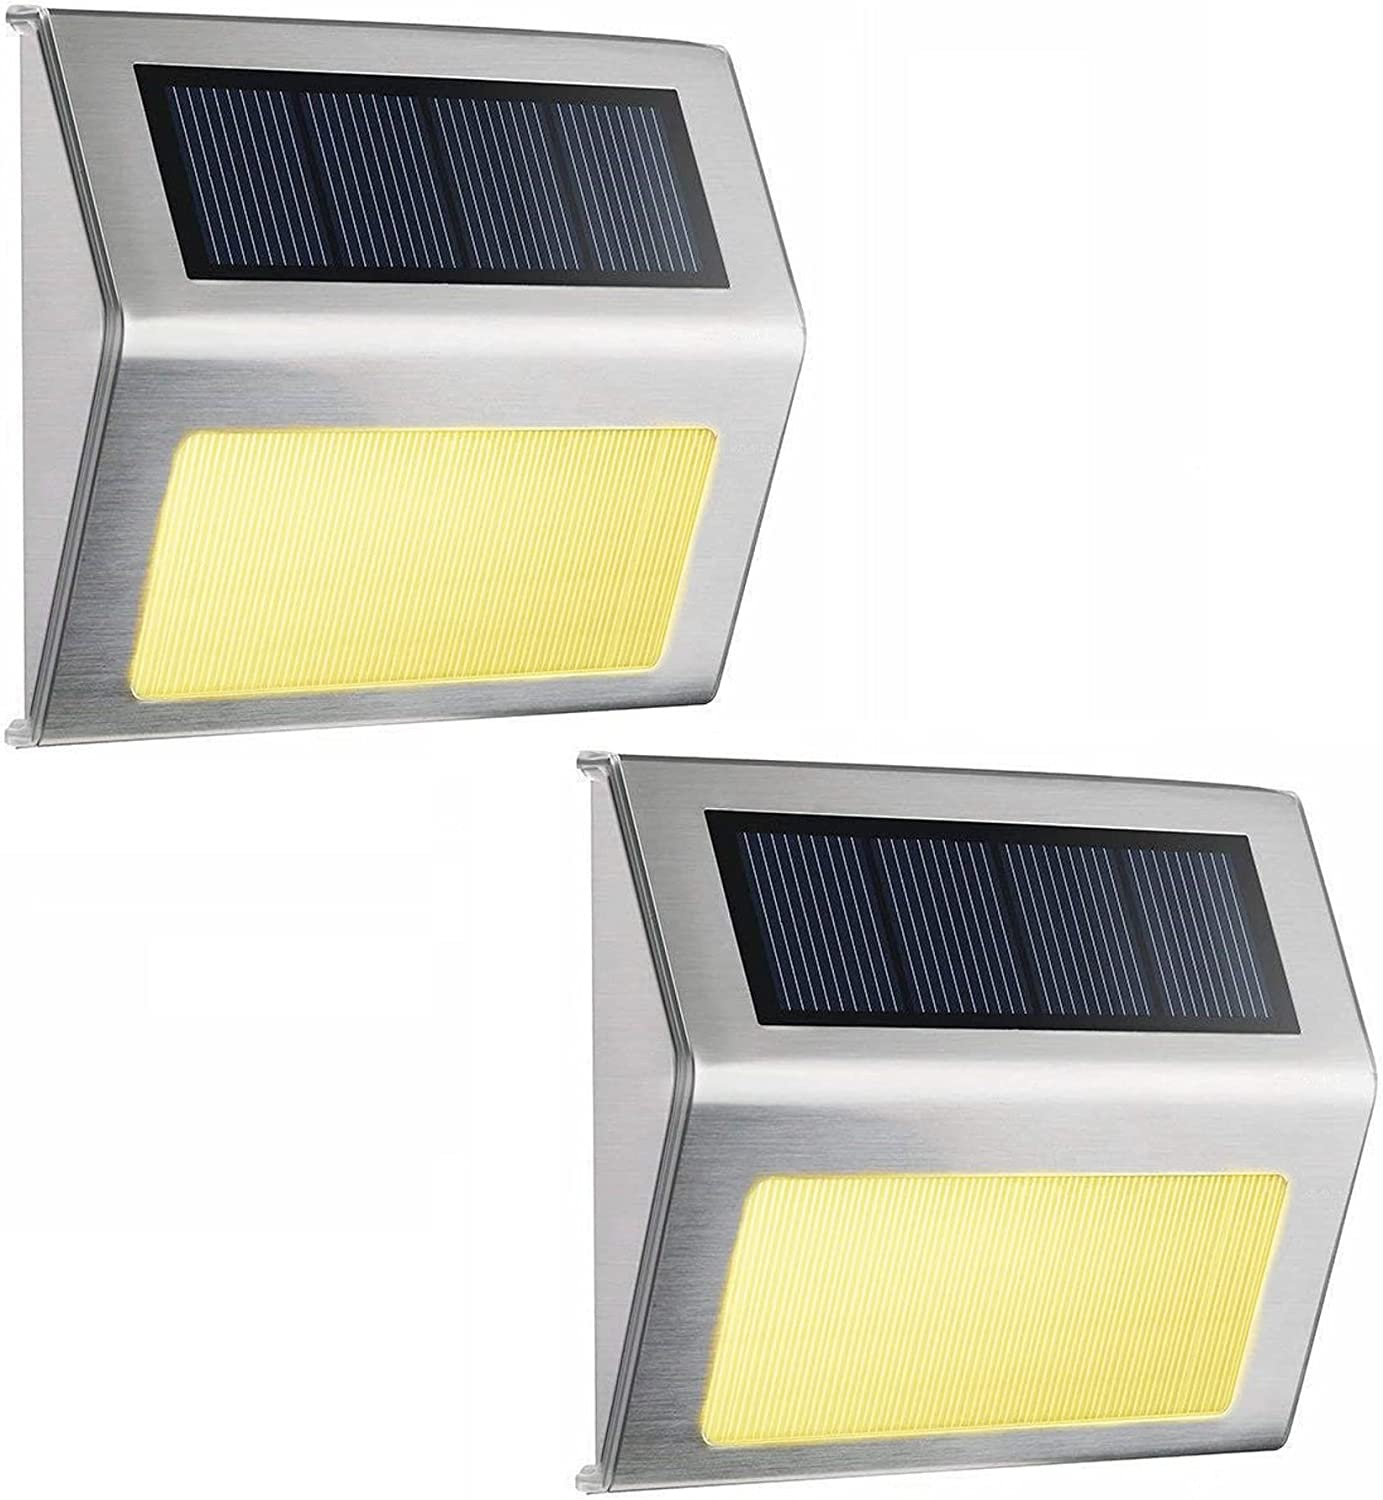 Warm White Max 78% Today's only OFF Solar Step Lights for Fences Stairs Pathwa Post Decks